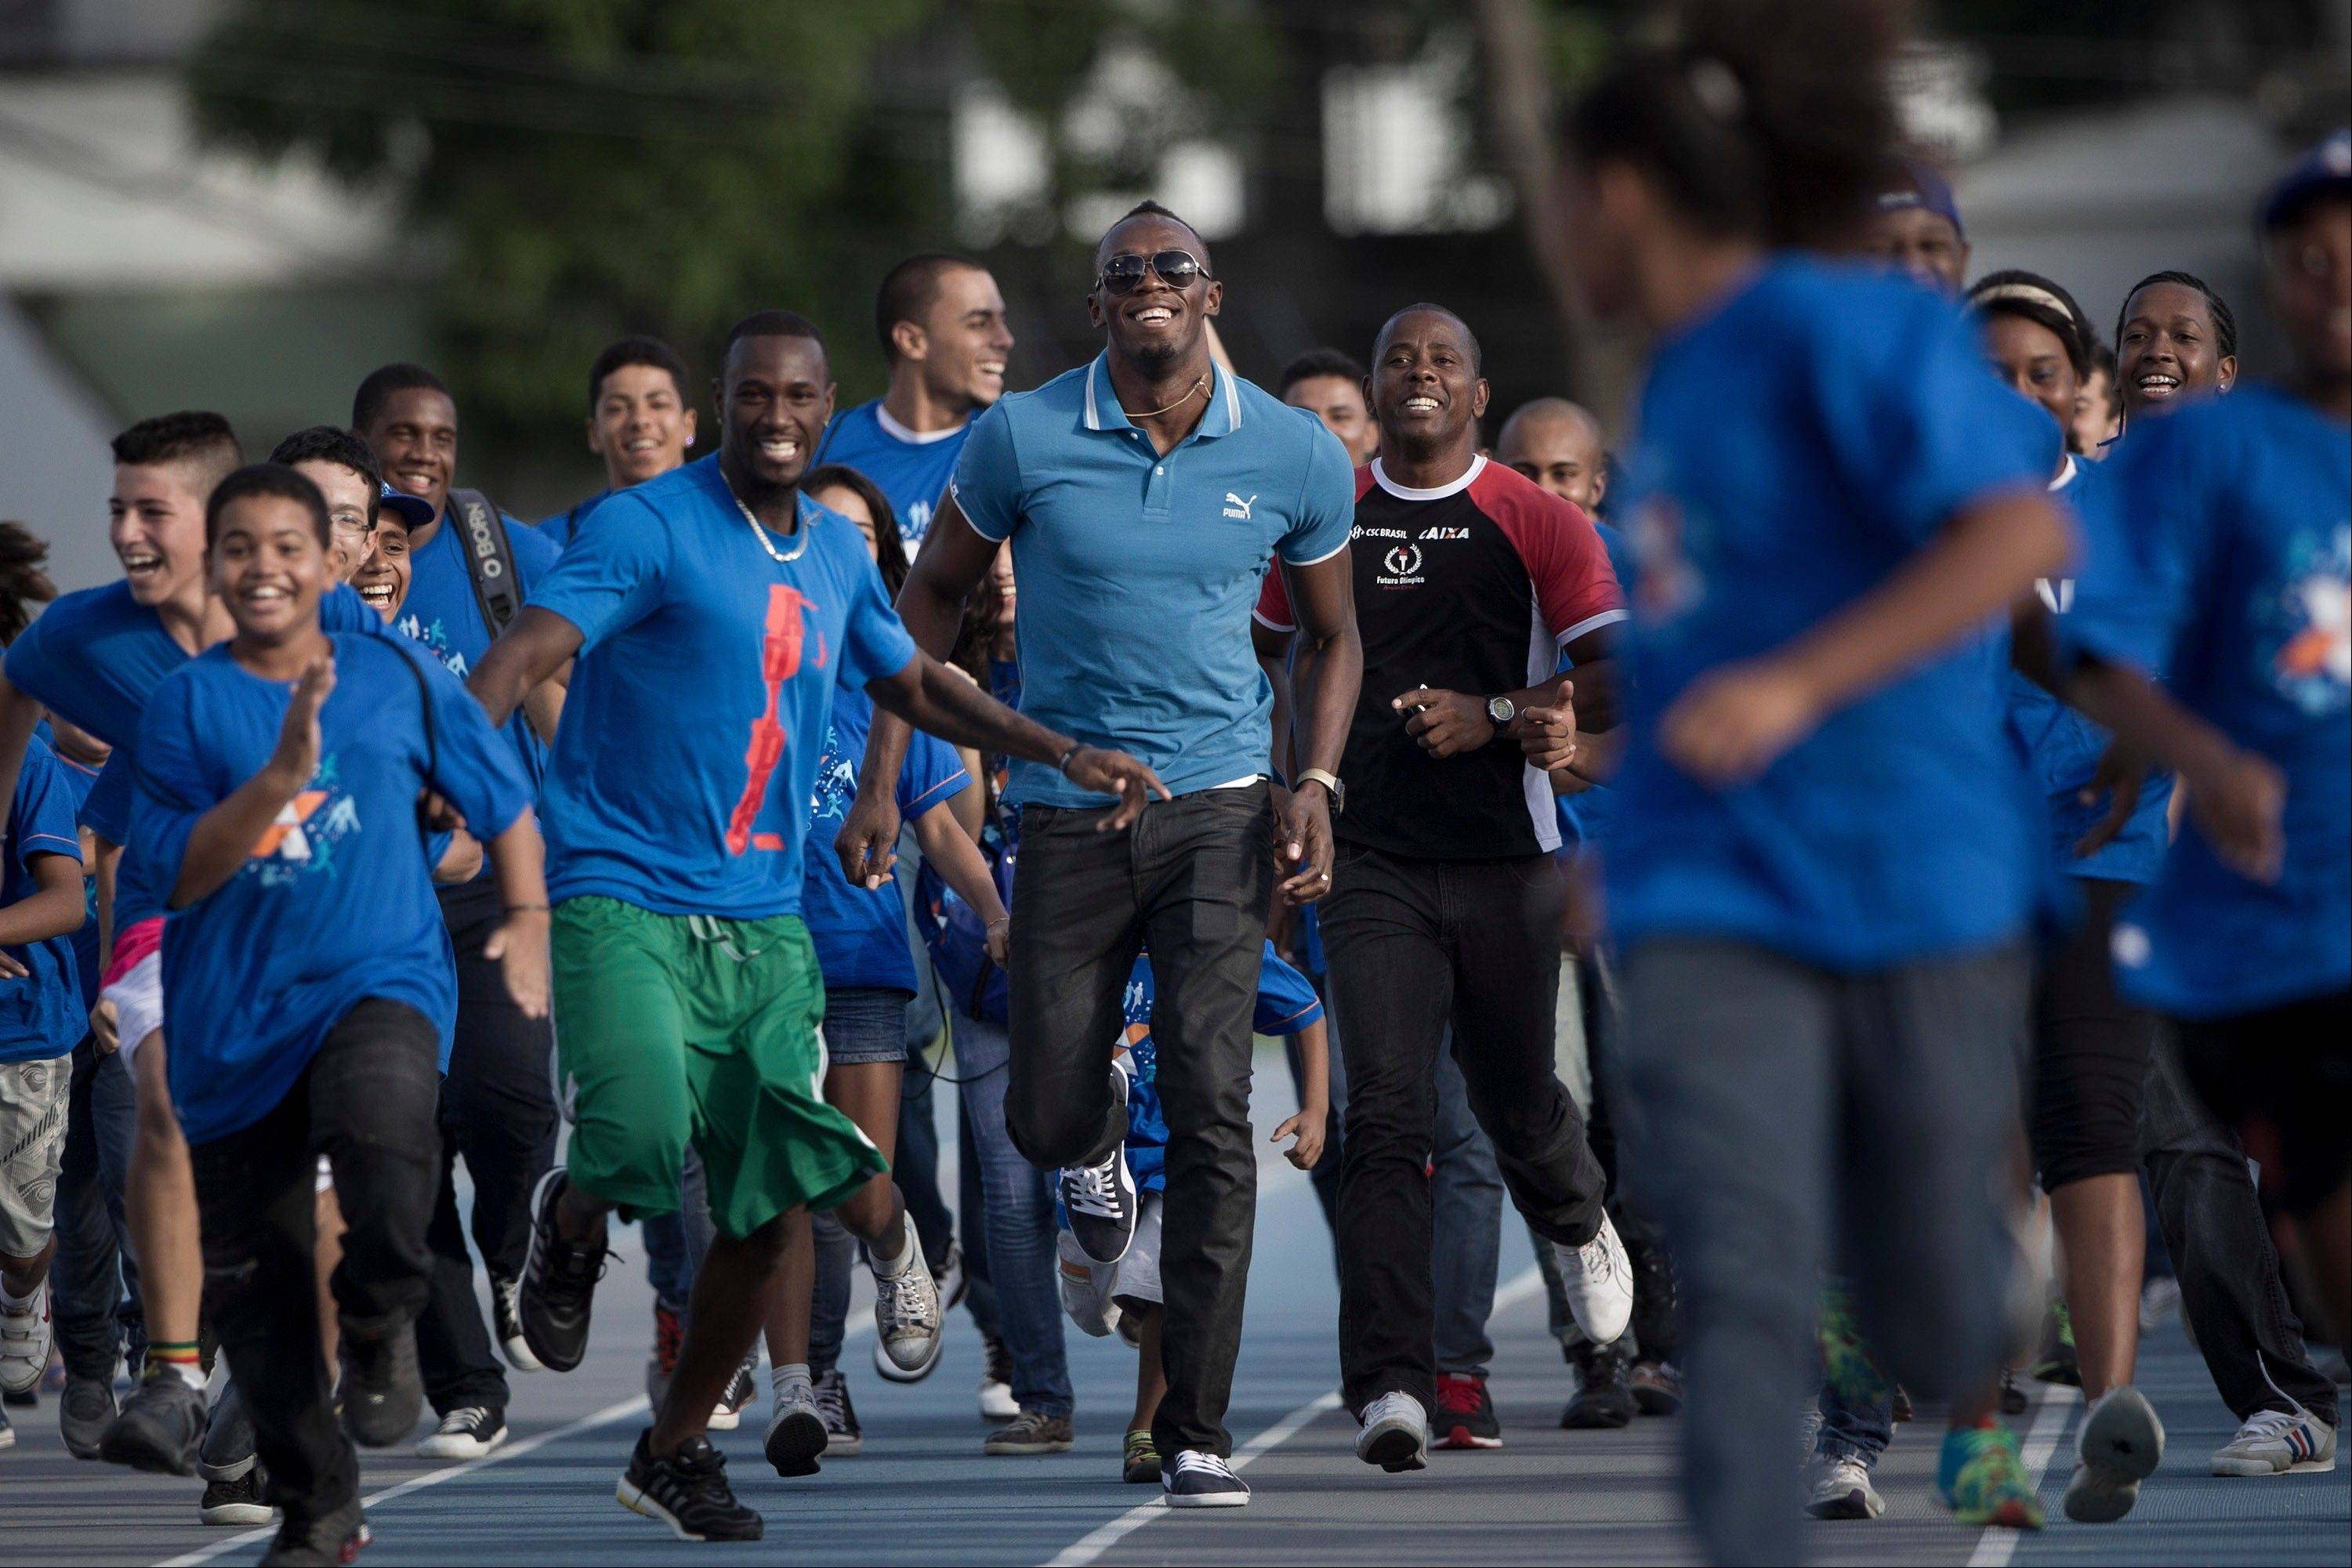 Jamaican Olympic gold medalist Usain Bolt, center, and sprinter Daniel Bailey, from Antigua and Barbuda, center left, run with young athletes during their visit to the Projeto Futuro Olimpico or Olympic Future Project in Rio de Janeiro, Brazil, Thursday, March 28, 2013. The Olympic Future Project promotes the practice of sports and healthy living, targeting the low-income populations of the inner city.